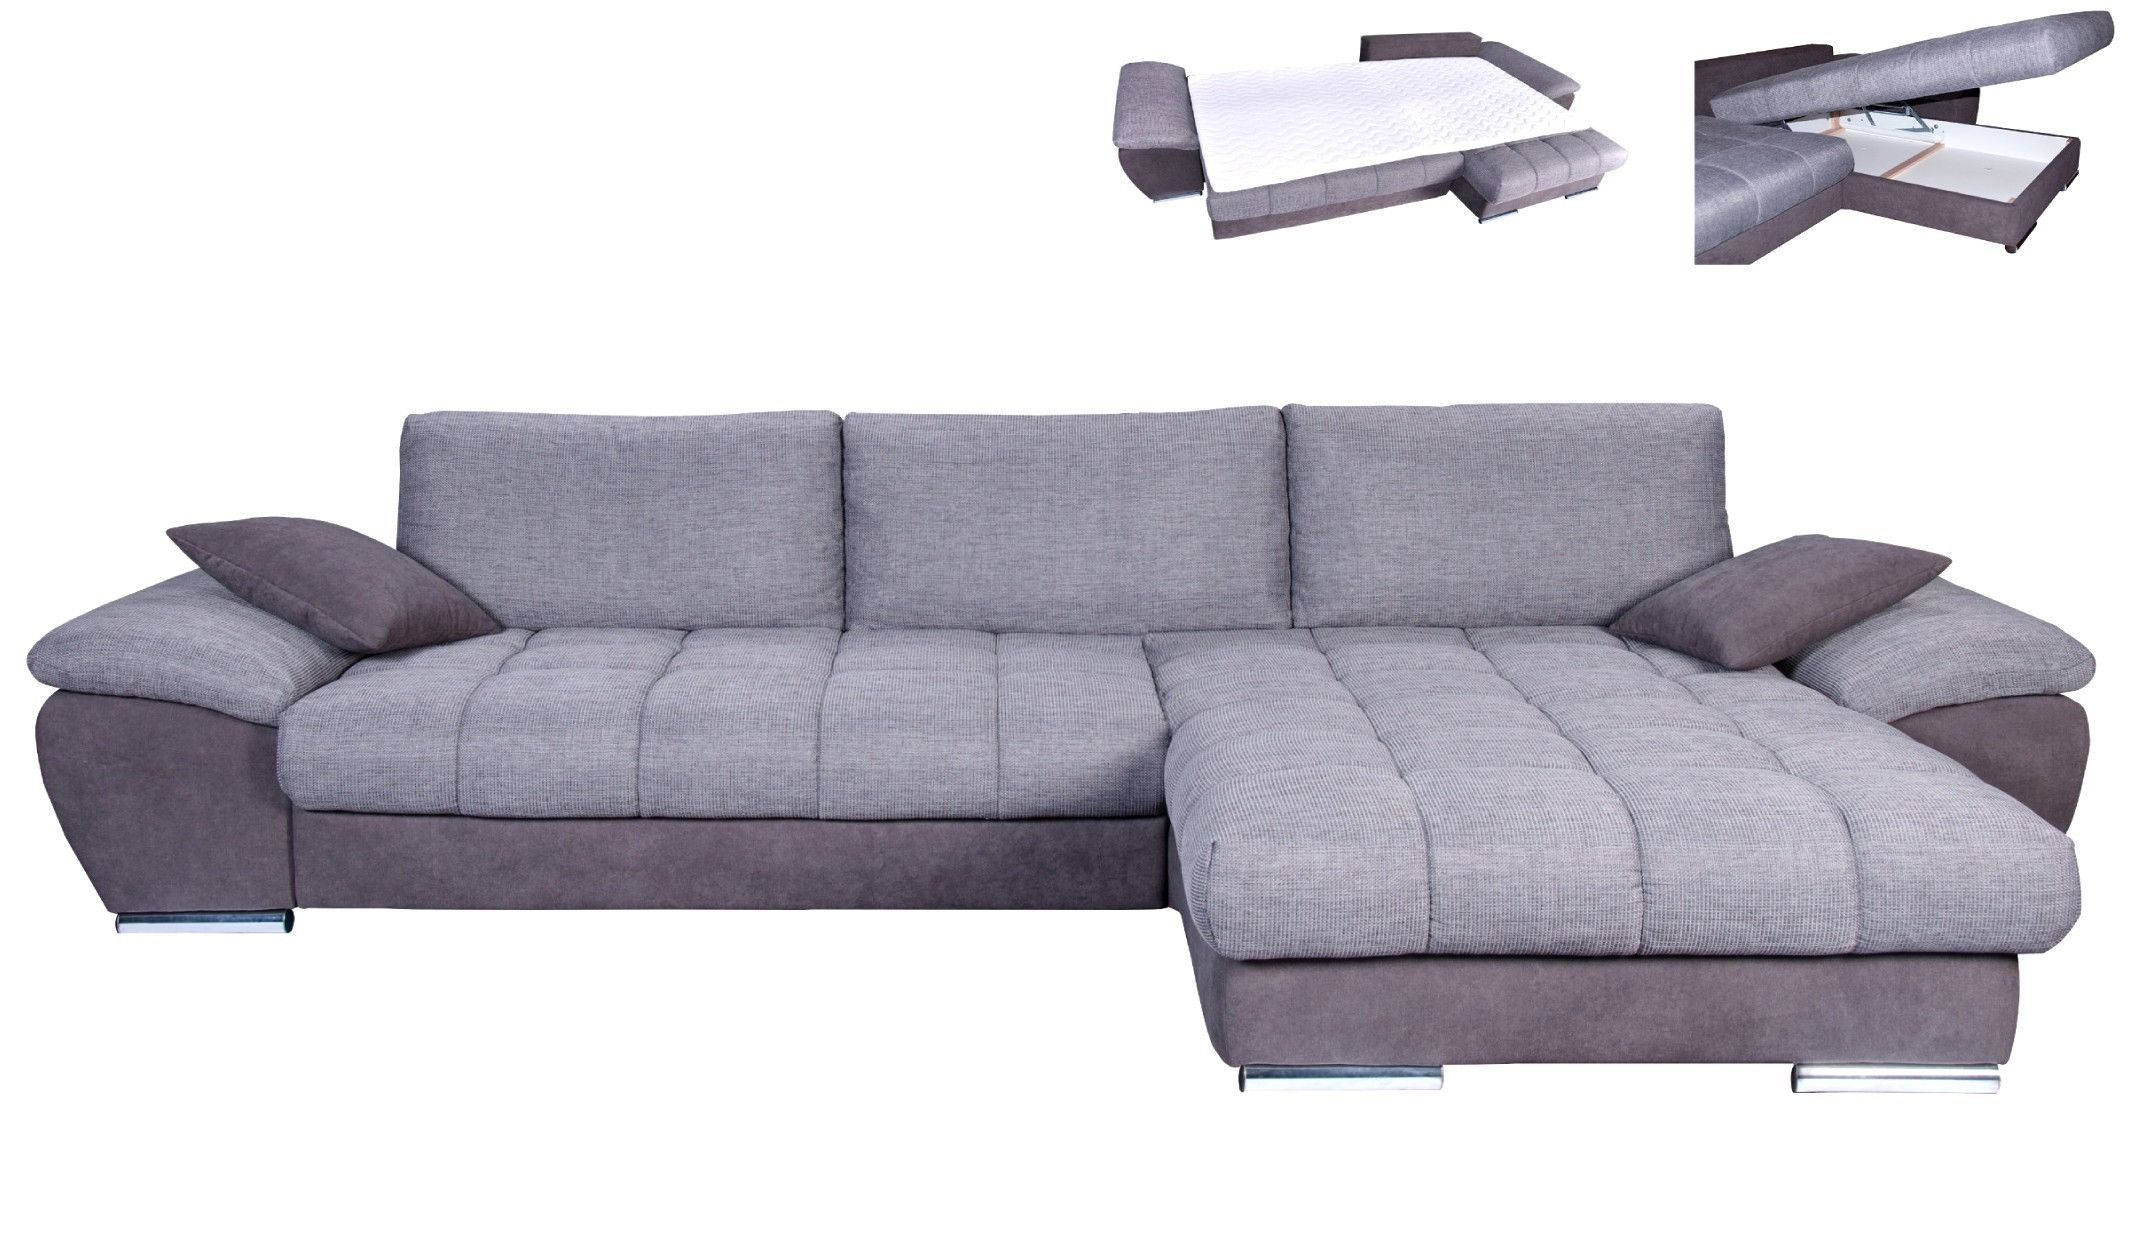 Couch Billig Schön Couch Billig Couch Möbel Reclining Sofa Sofa Sectional